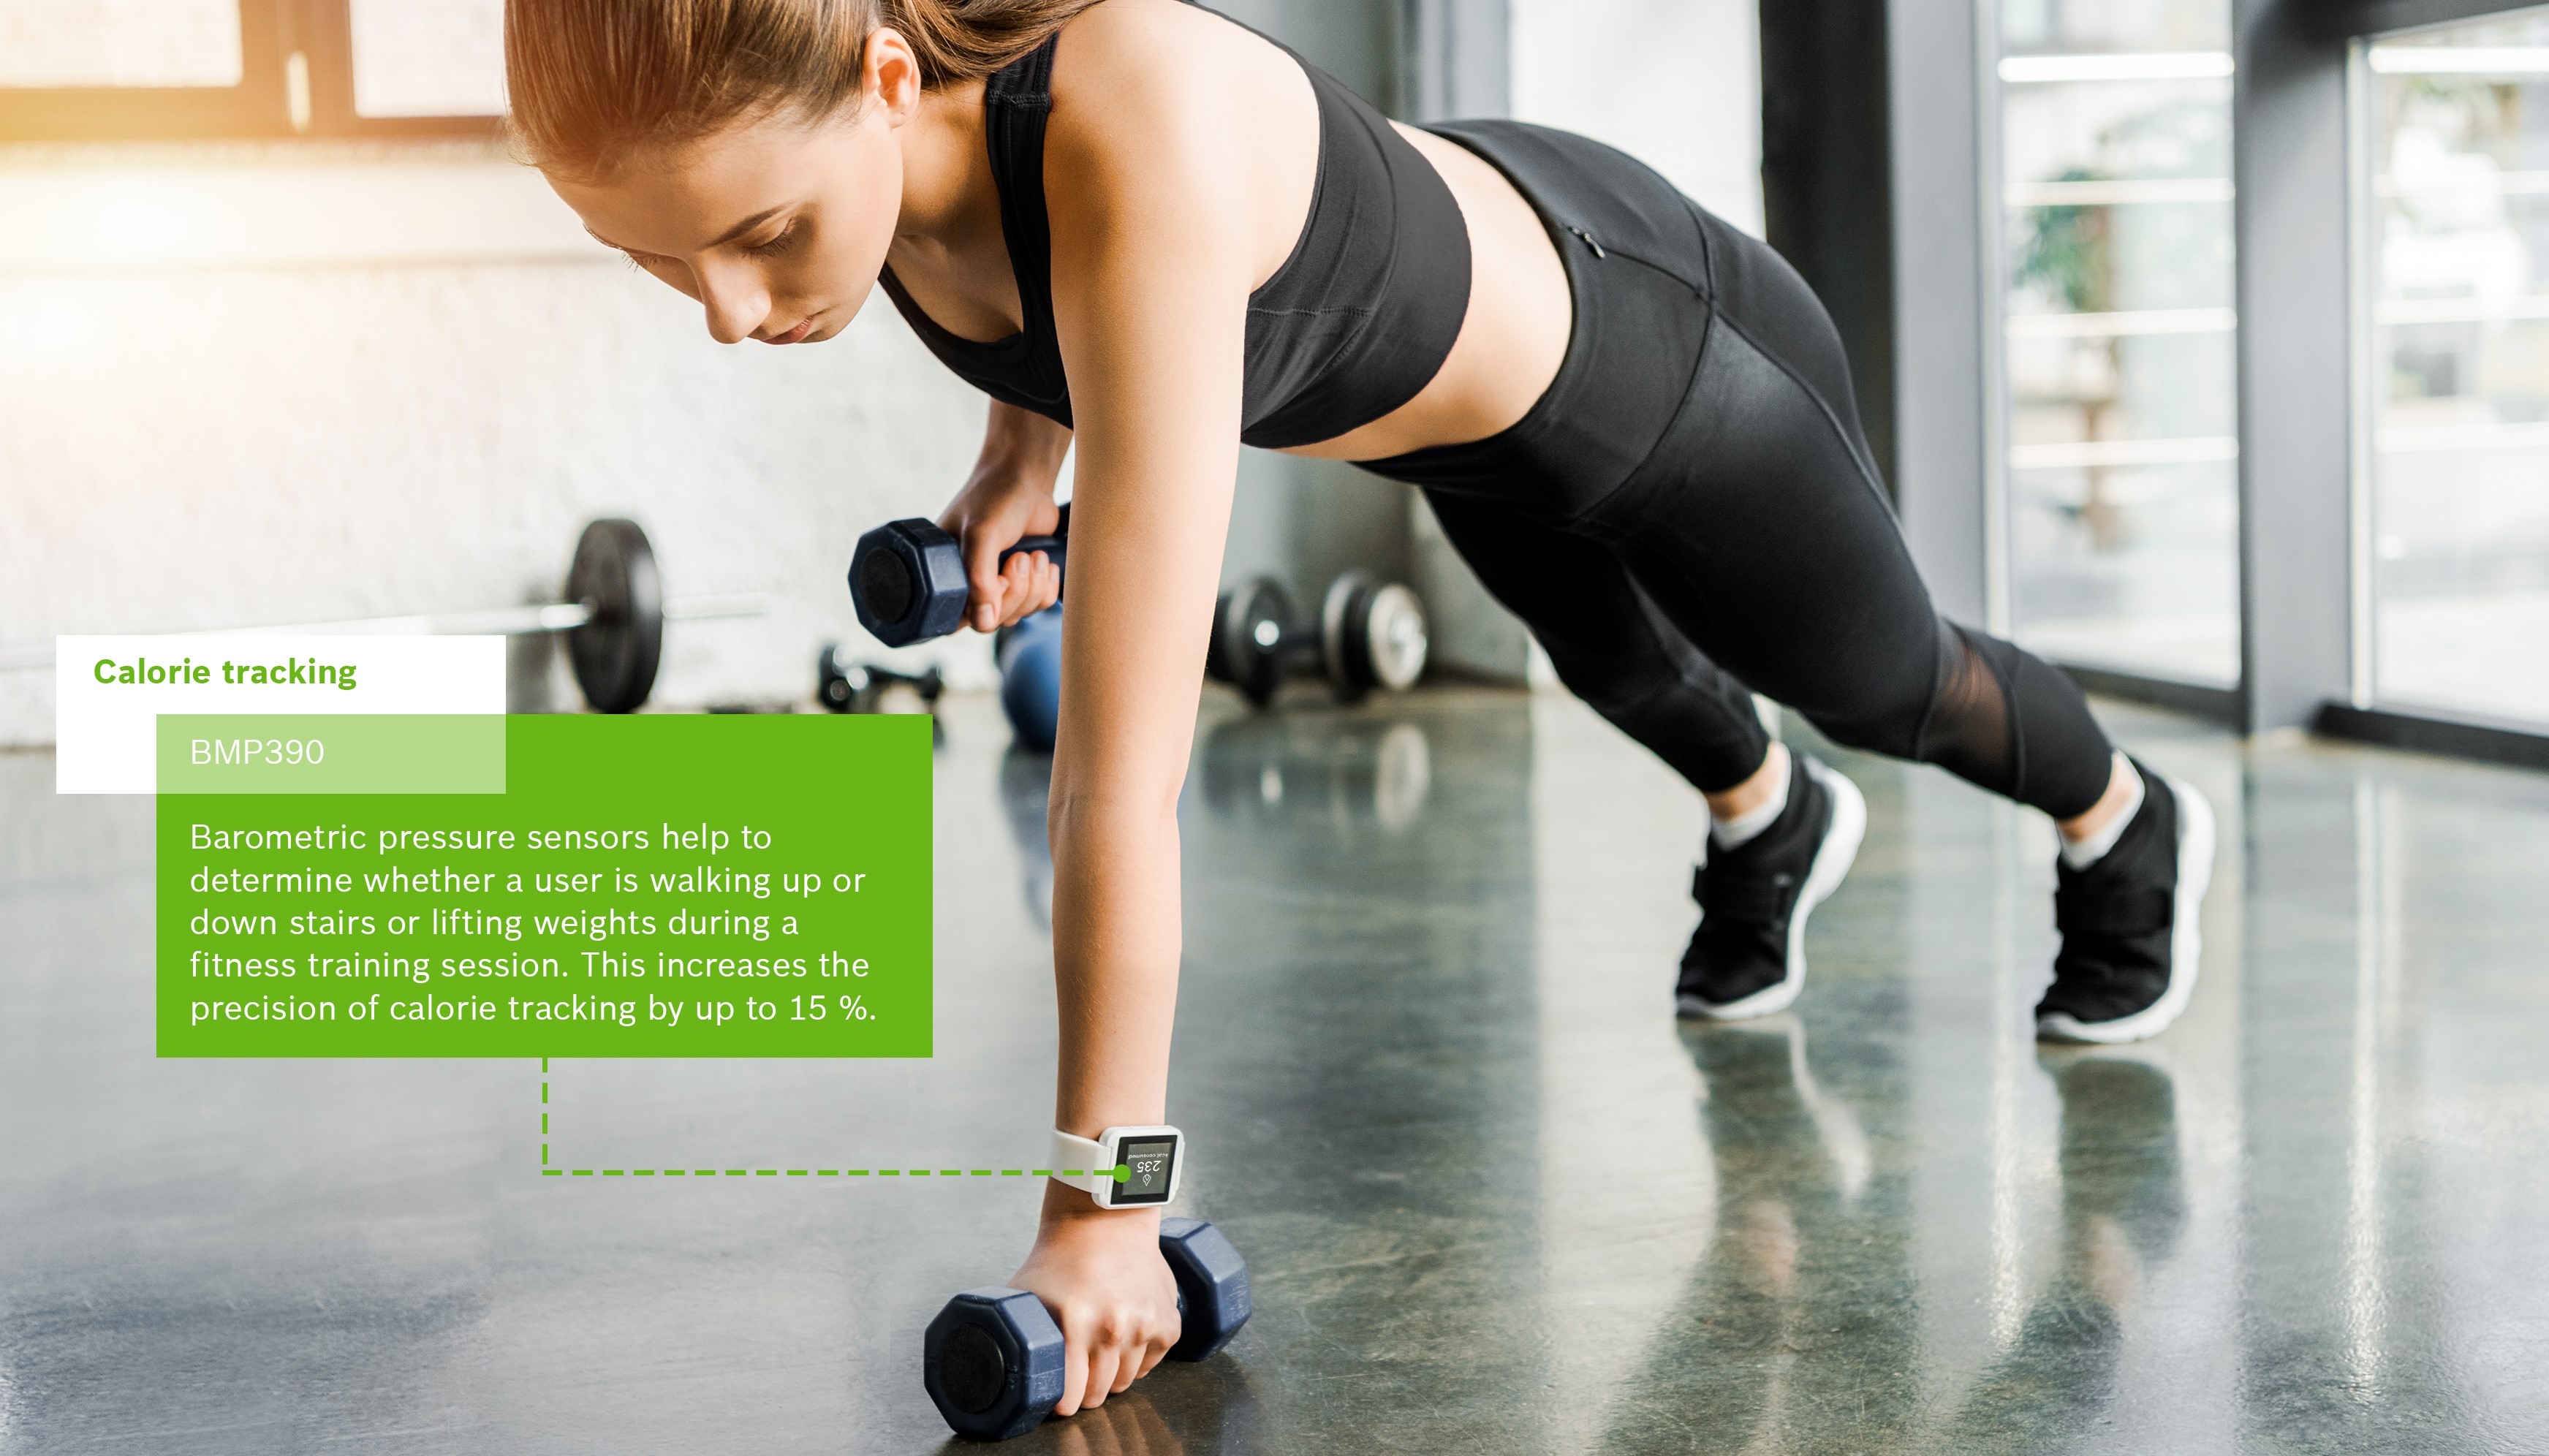 Improved fitness tracking